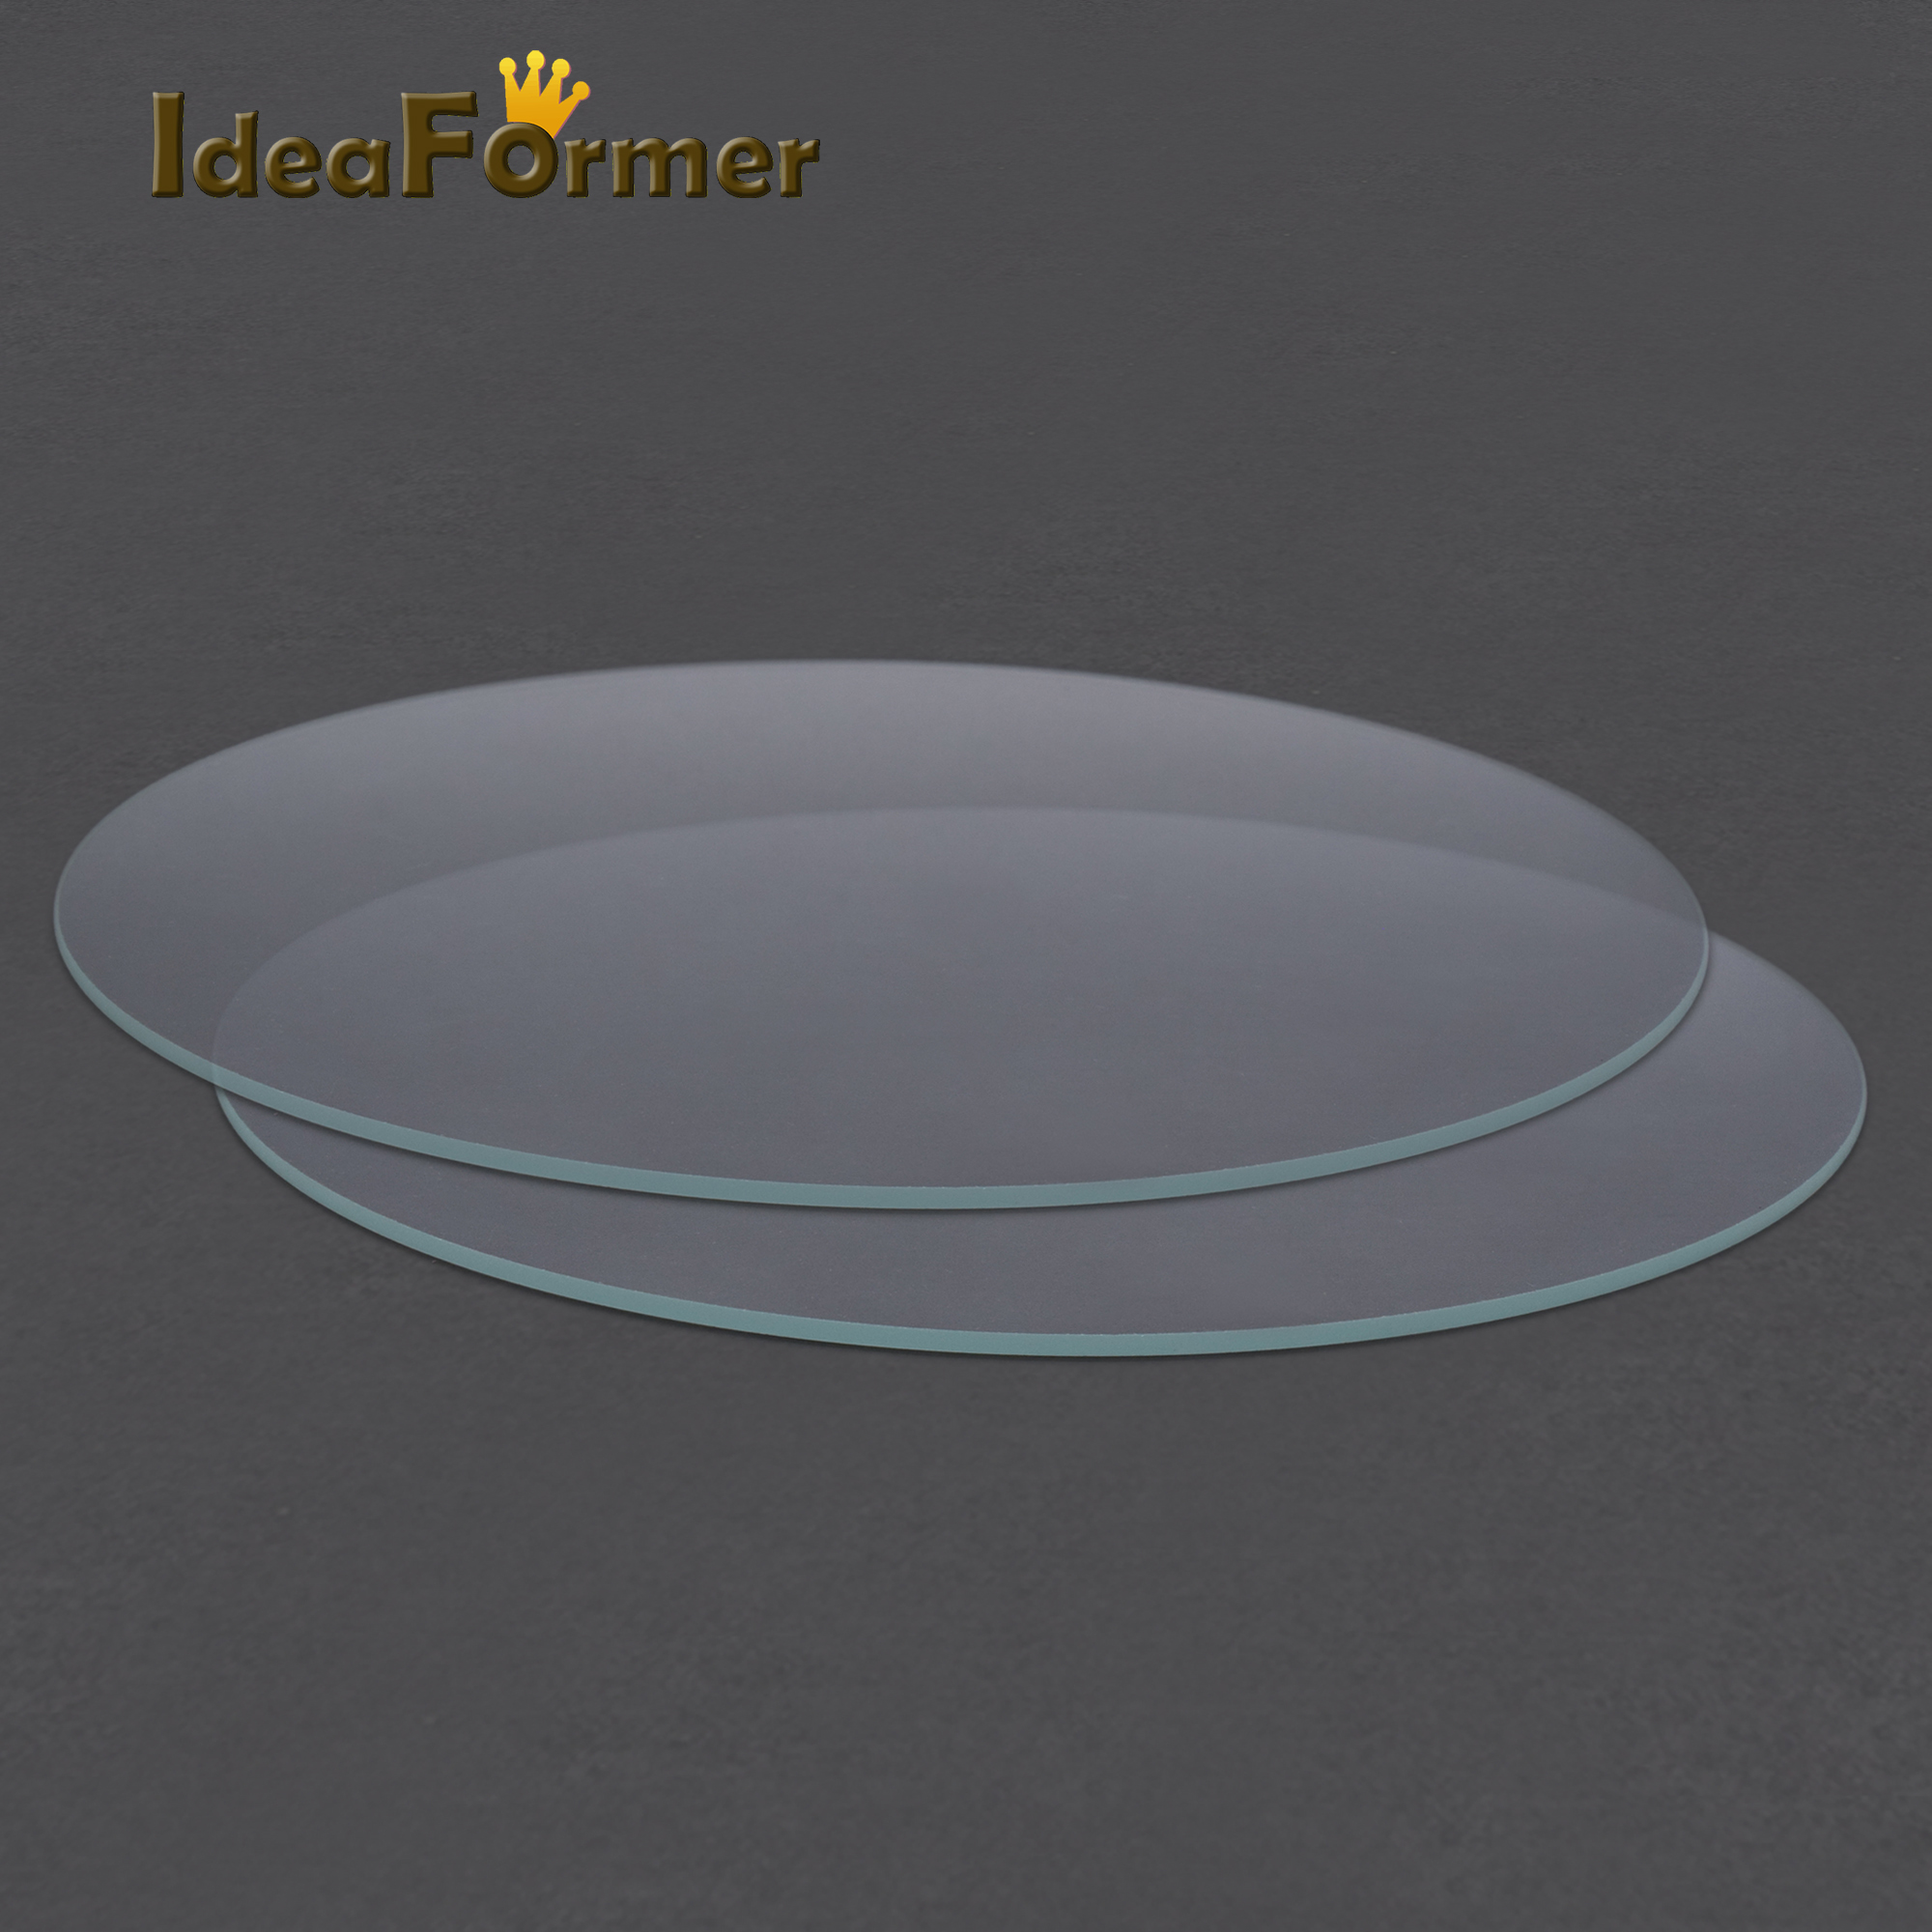 Round Borosilicate Glass Tempered Glass Plate Flat Transparent Diameter 200mm/220mm/240mm For Kossel Delta 3D Printer Heated Bed